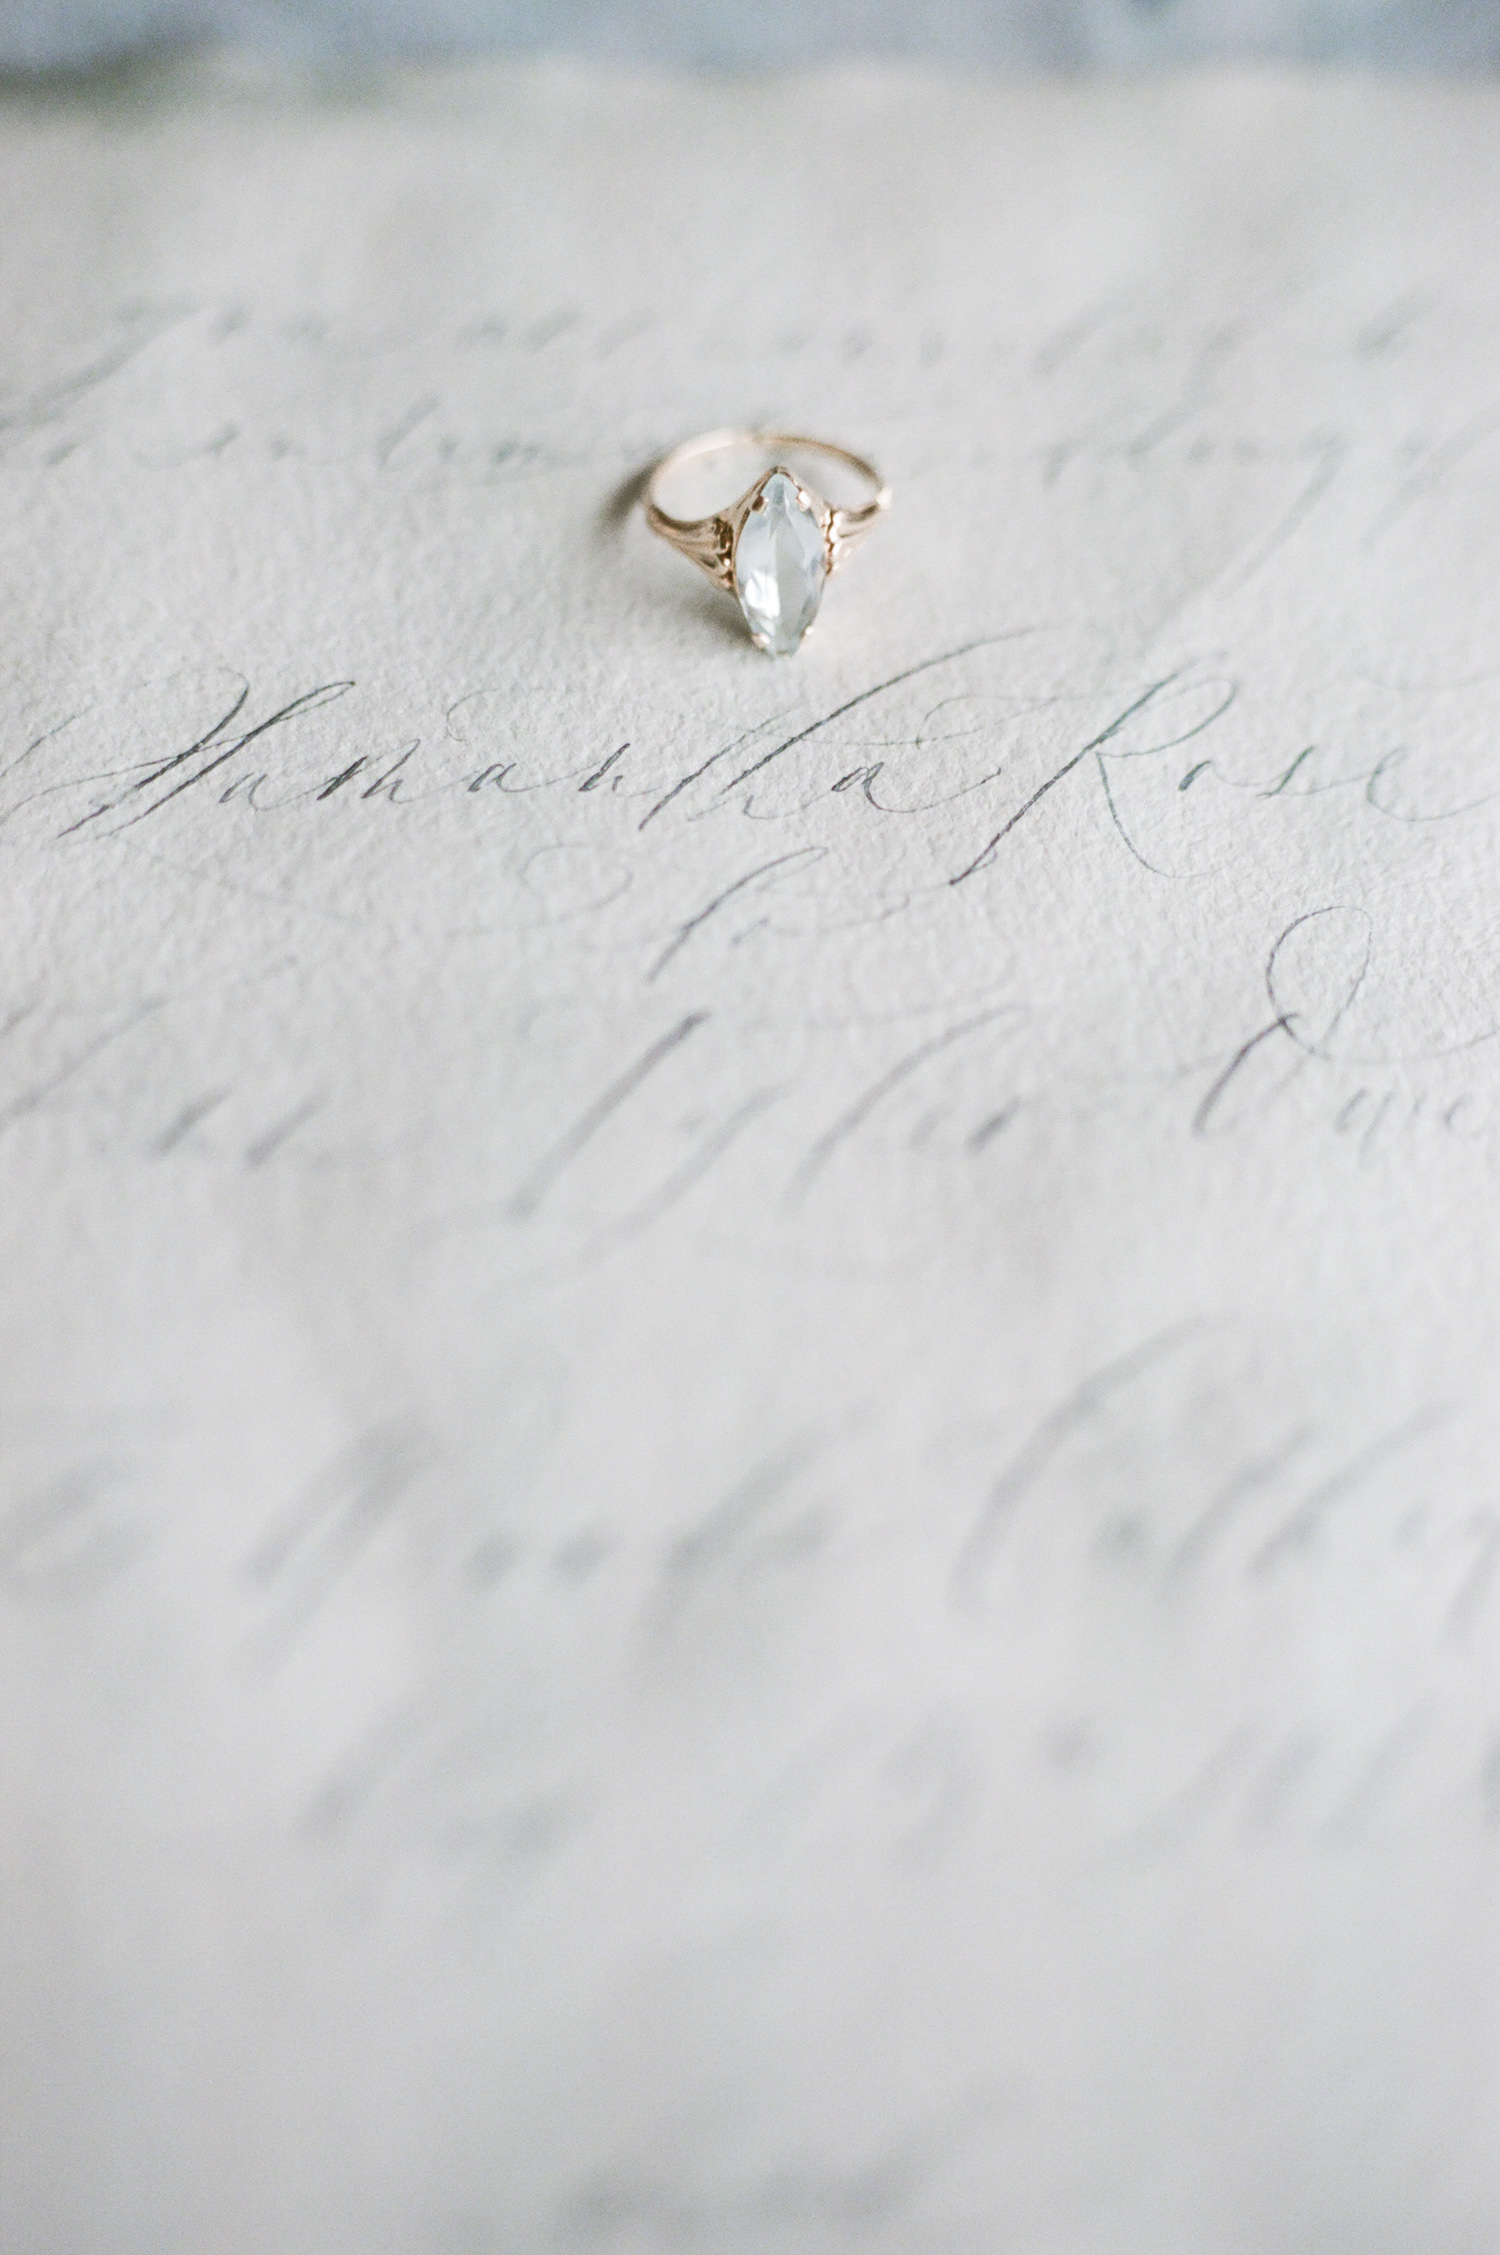 A beautiful antique gold and aquamarine engagement ring rests on a destination wedding invitation